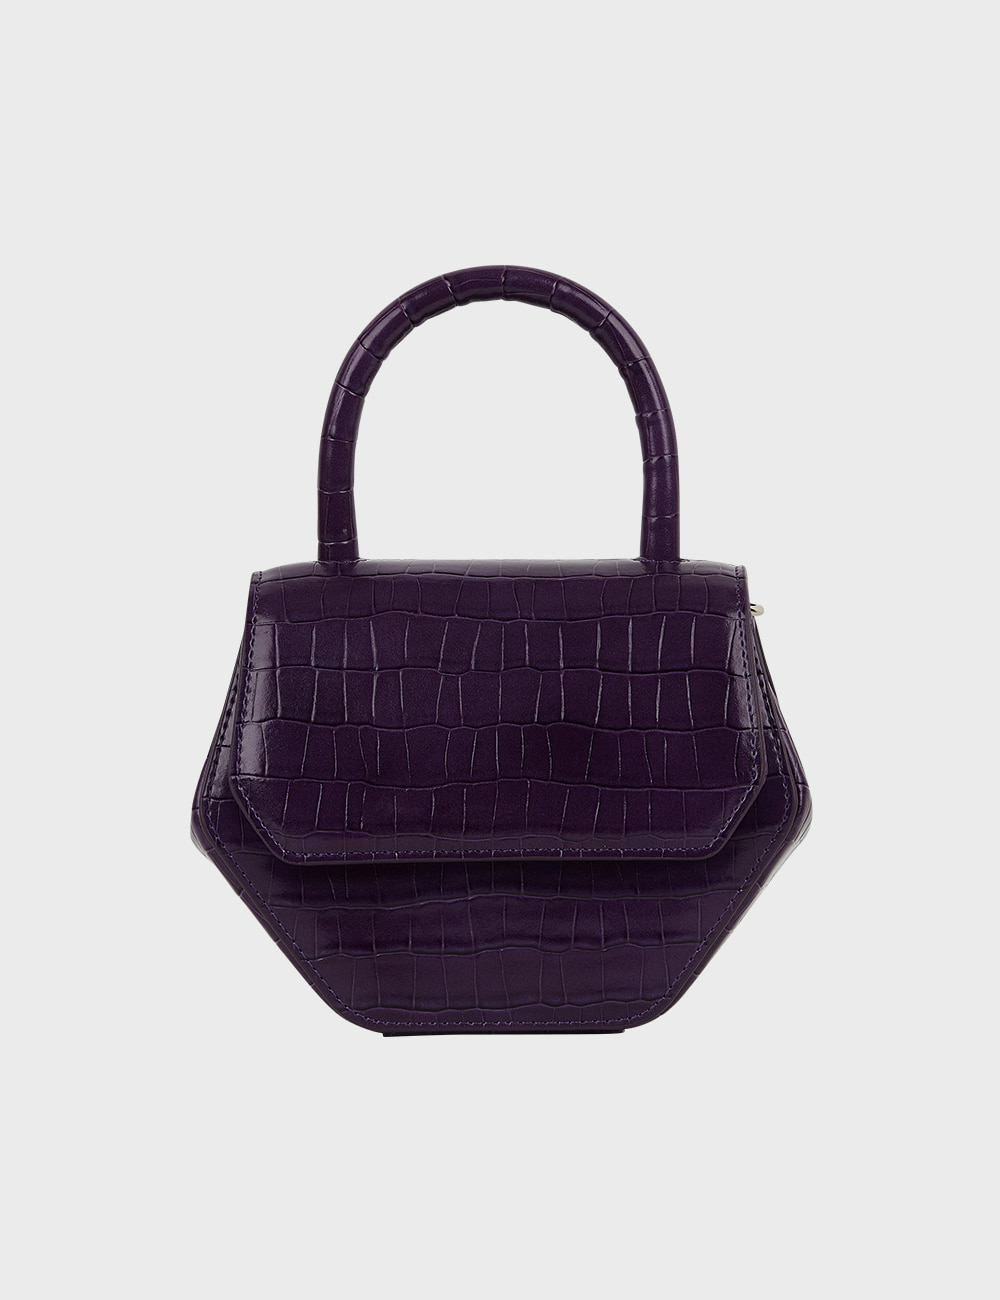 MAISON246,246 MAGOT CROCODILE SMALL BAG - PURPLE,No.246